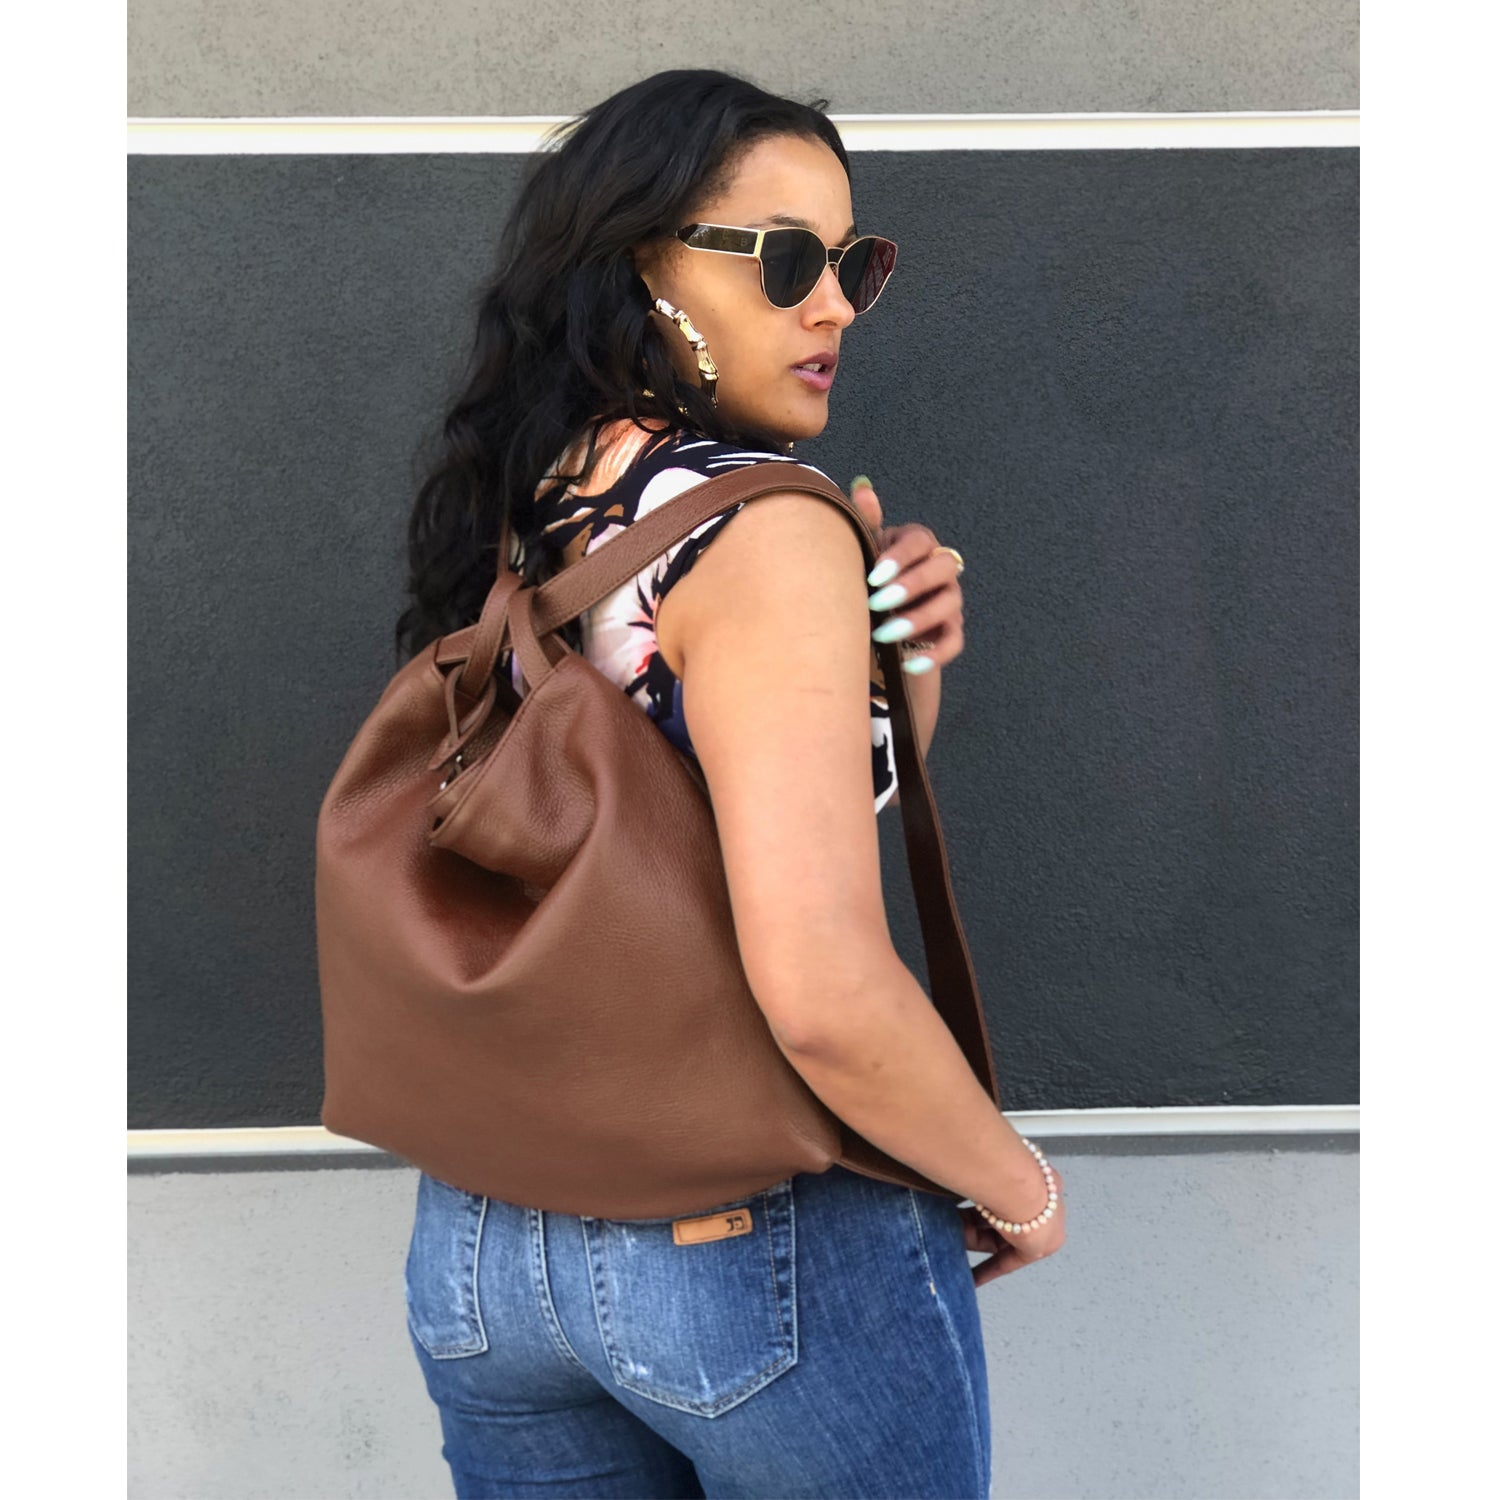 Dollaro Leather Shoulder Bag & Backpack (B161)